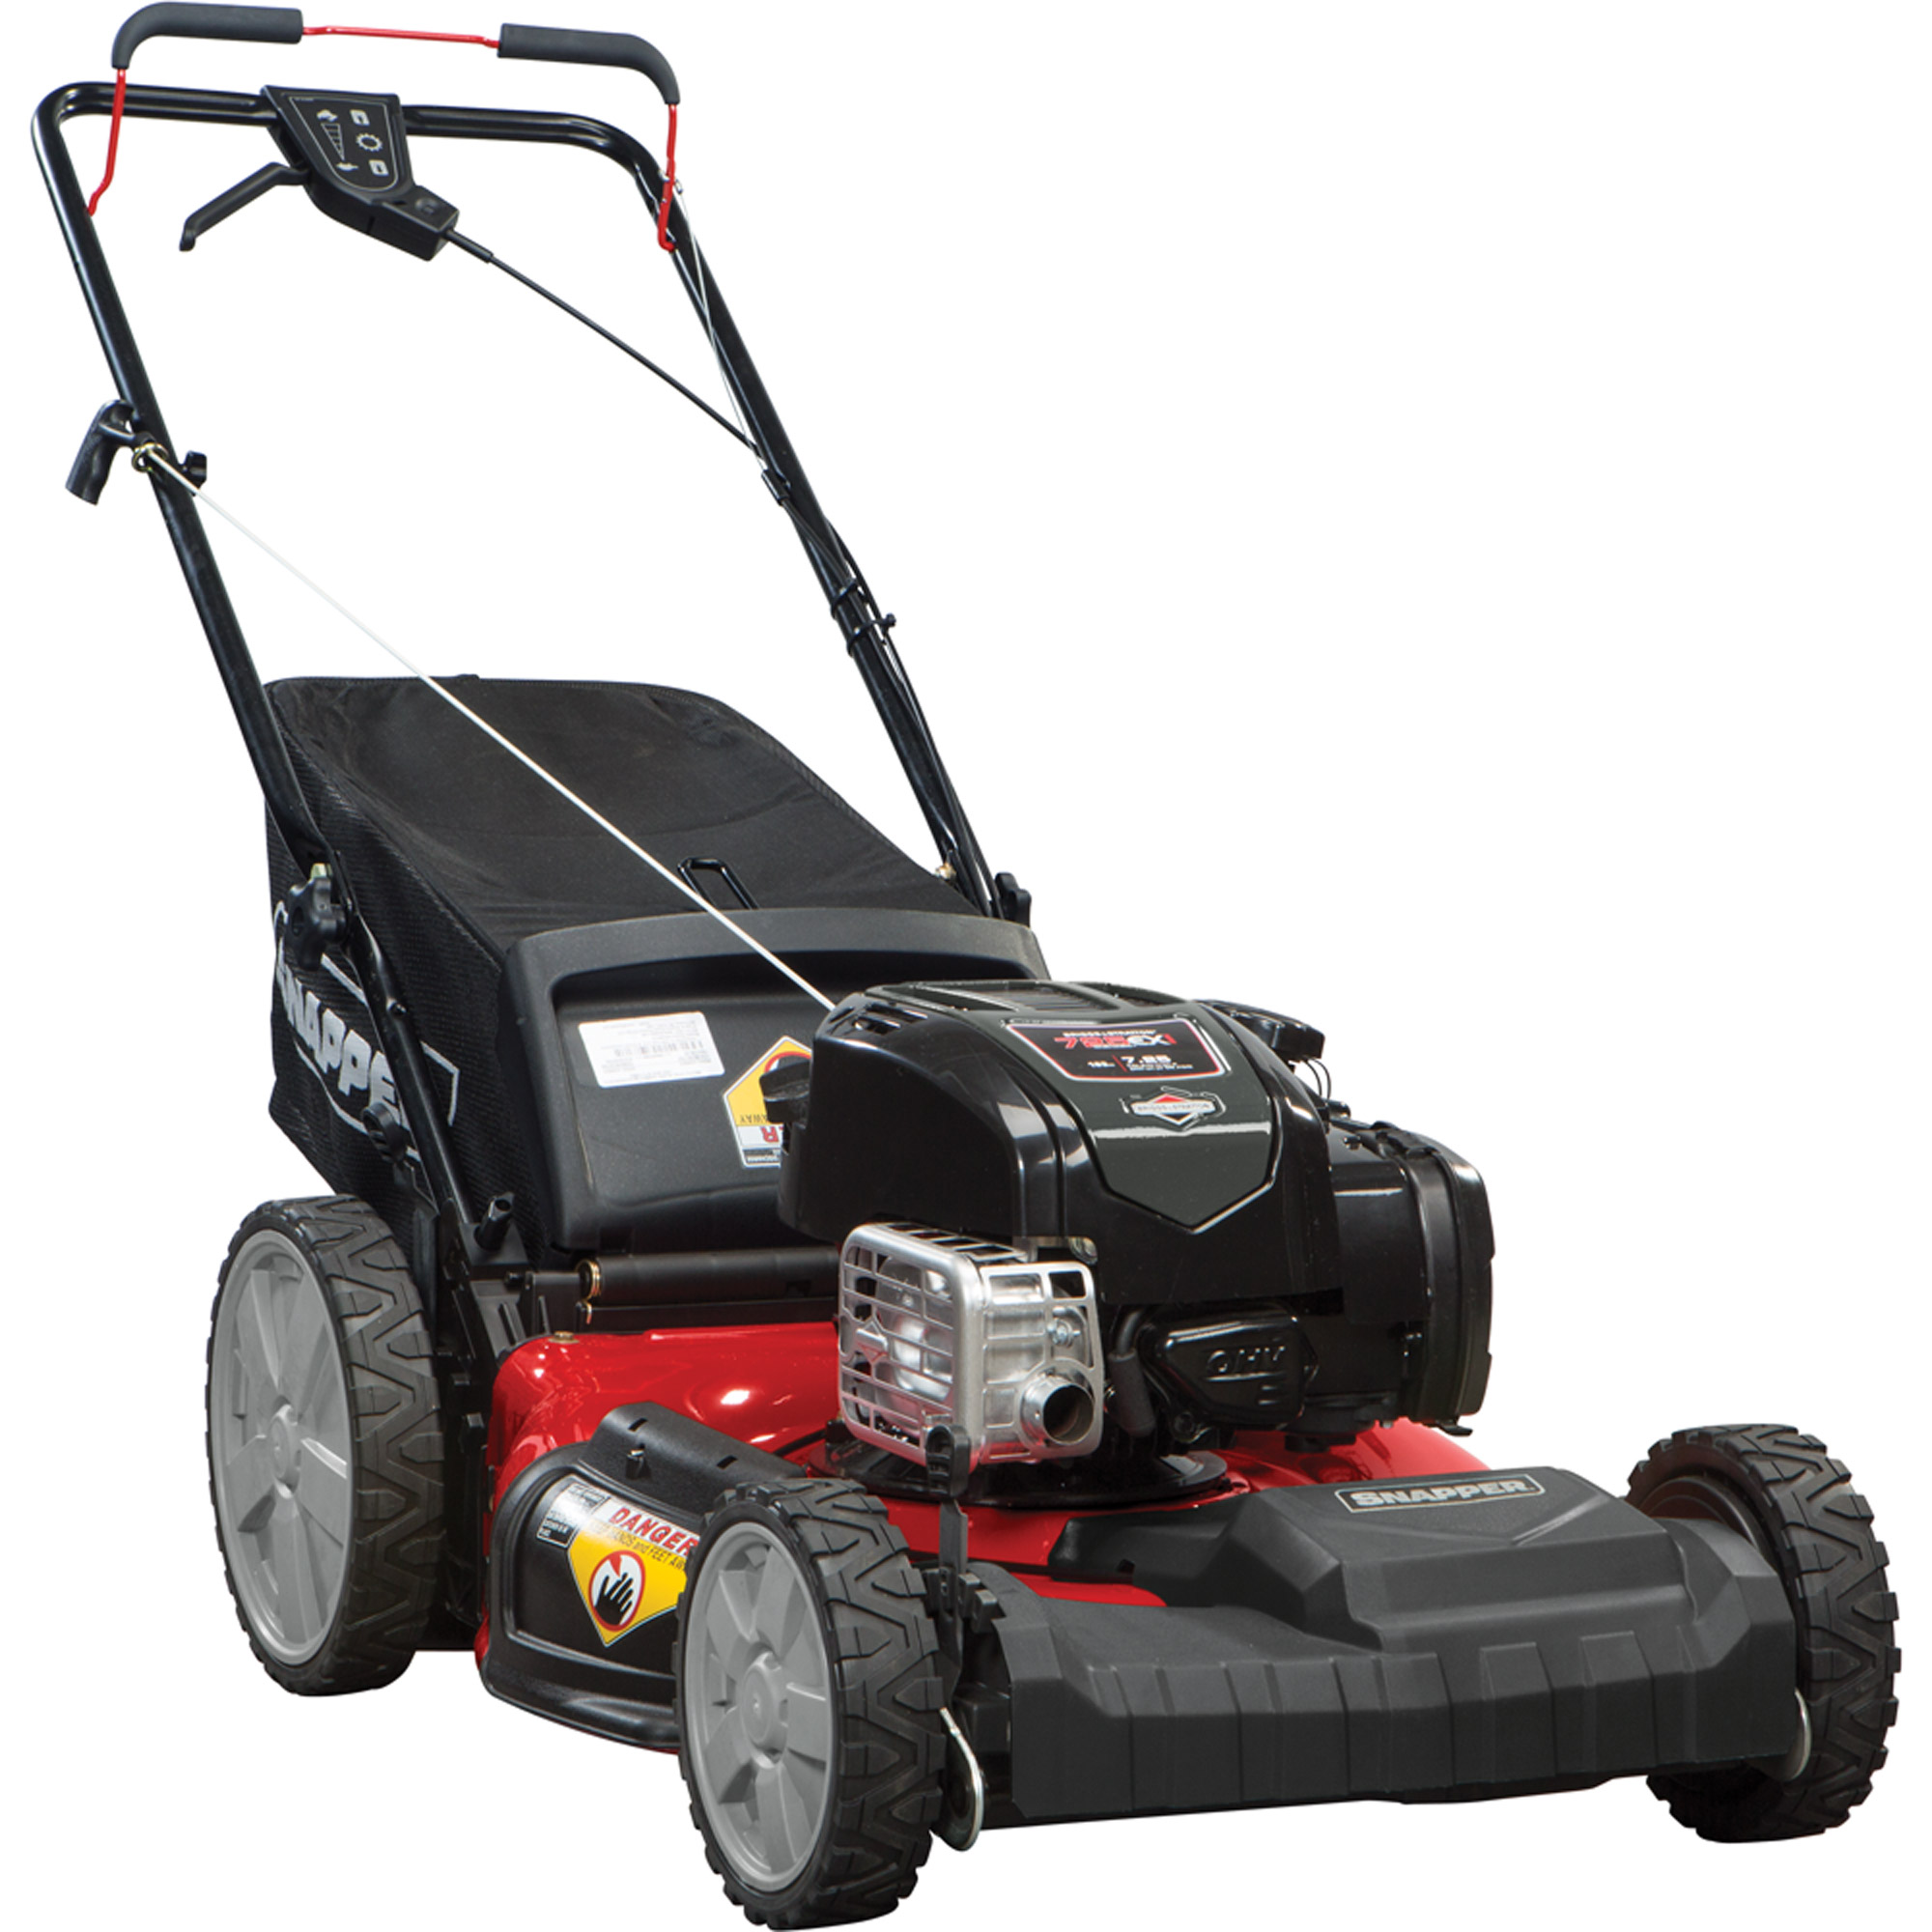 hight resolution of snapper 21 self propelled gas mower with side discharge mulching rear bag and rear high wheel walmart com